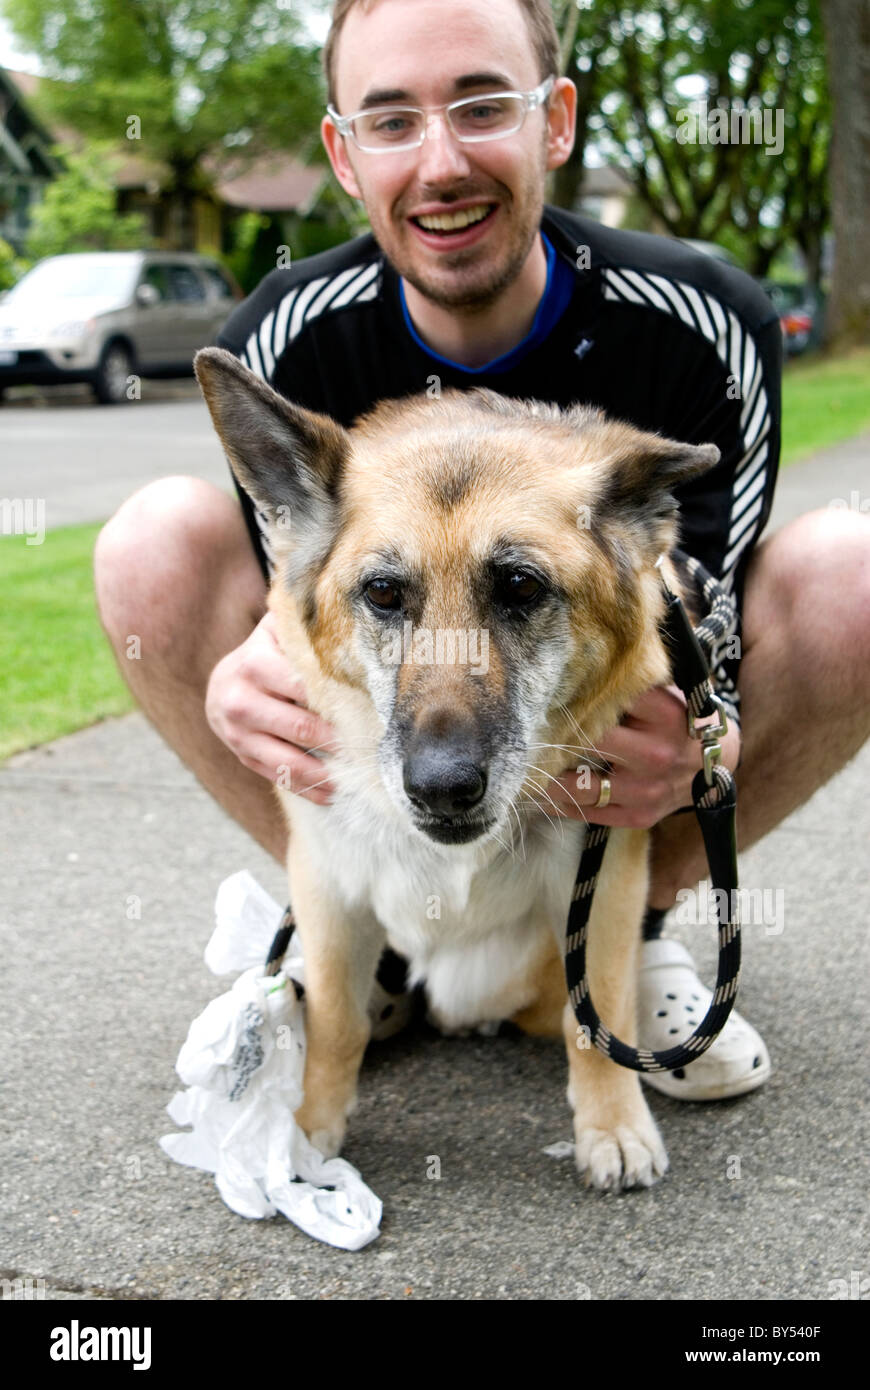 Man with his dog, a German Shepherd on the sidewalk with leash and doggy bag, Vancouver, British Columbia, Canada - Stock Image